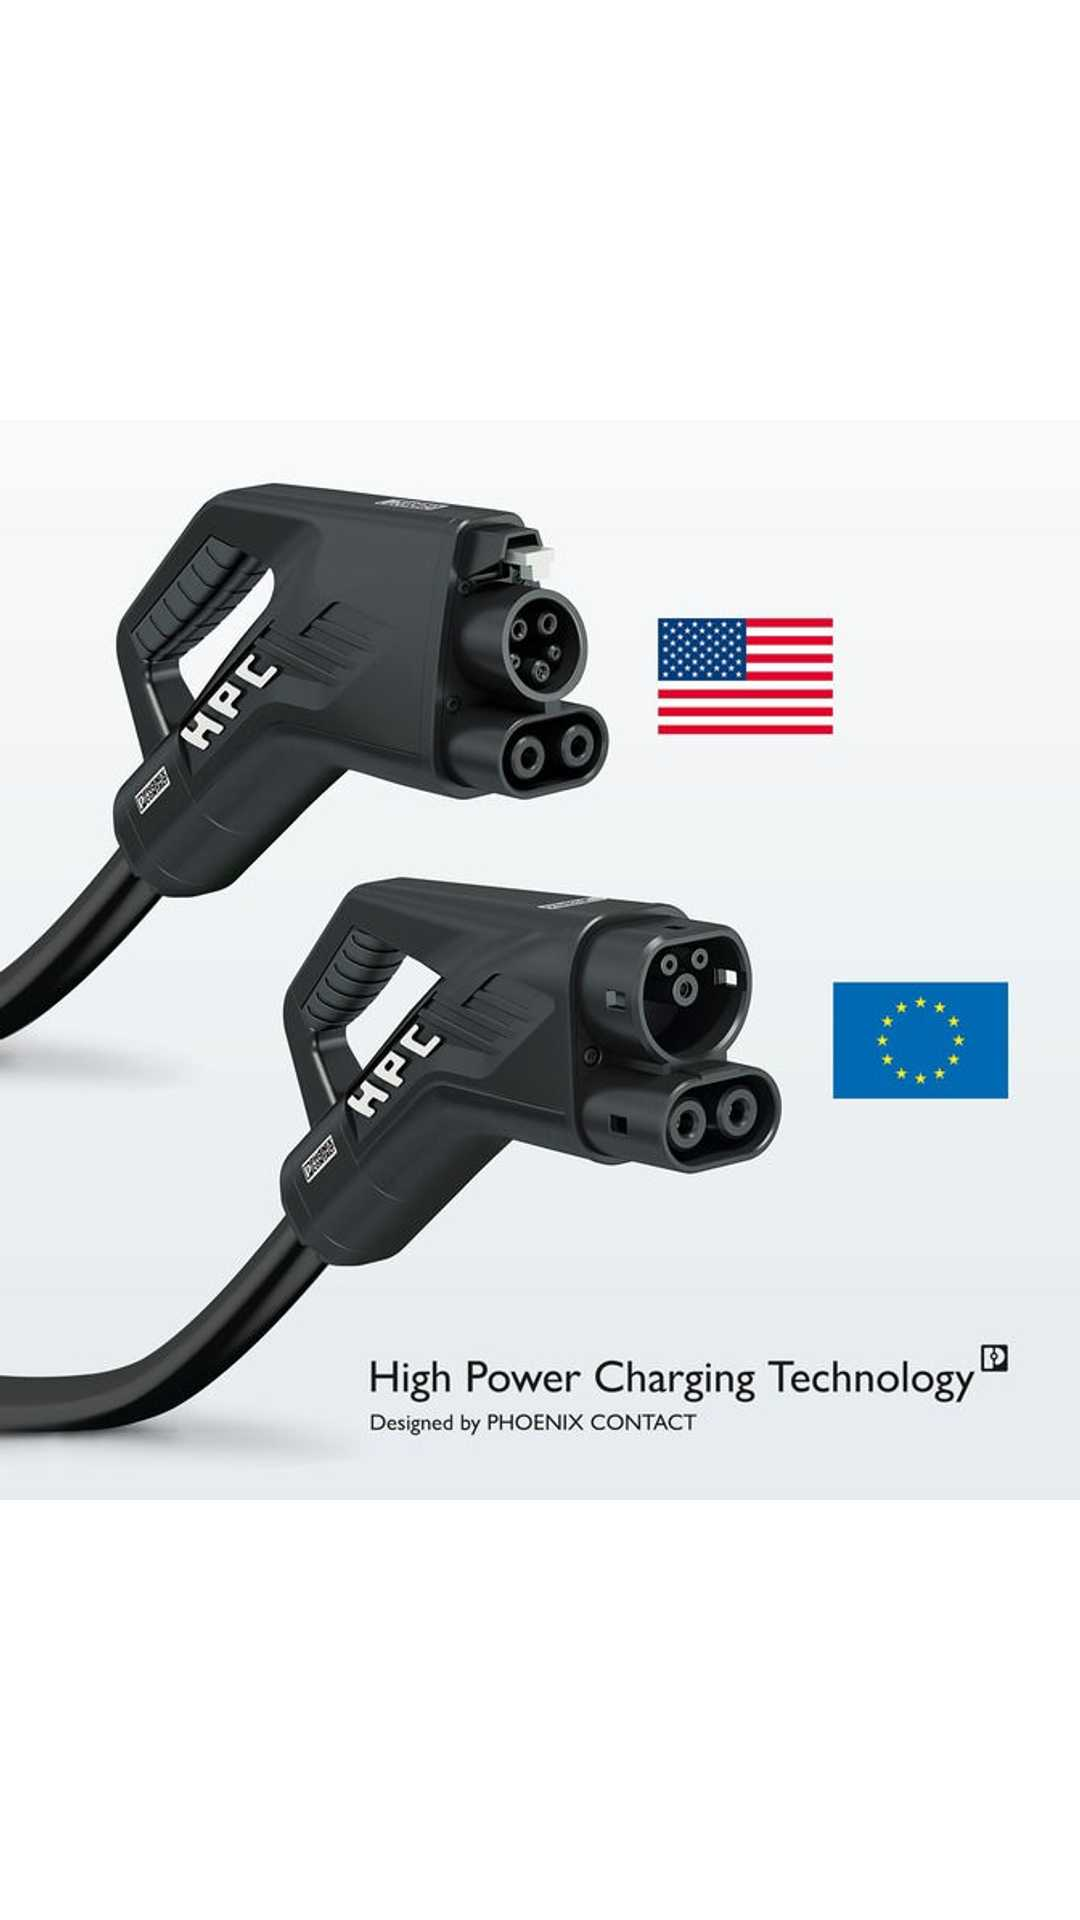 DoE Announces Funding Opportunity For Extreme Fast Charging